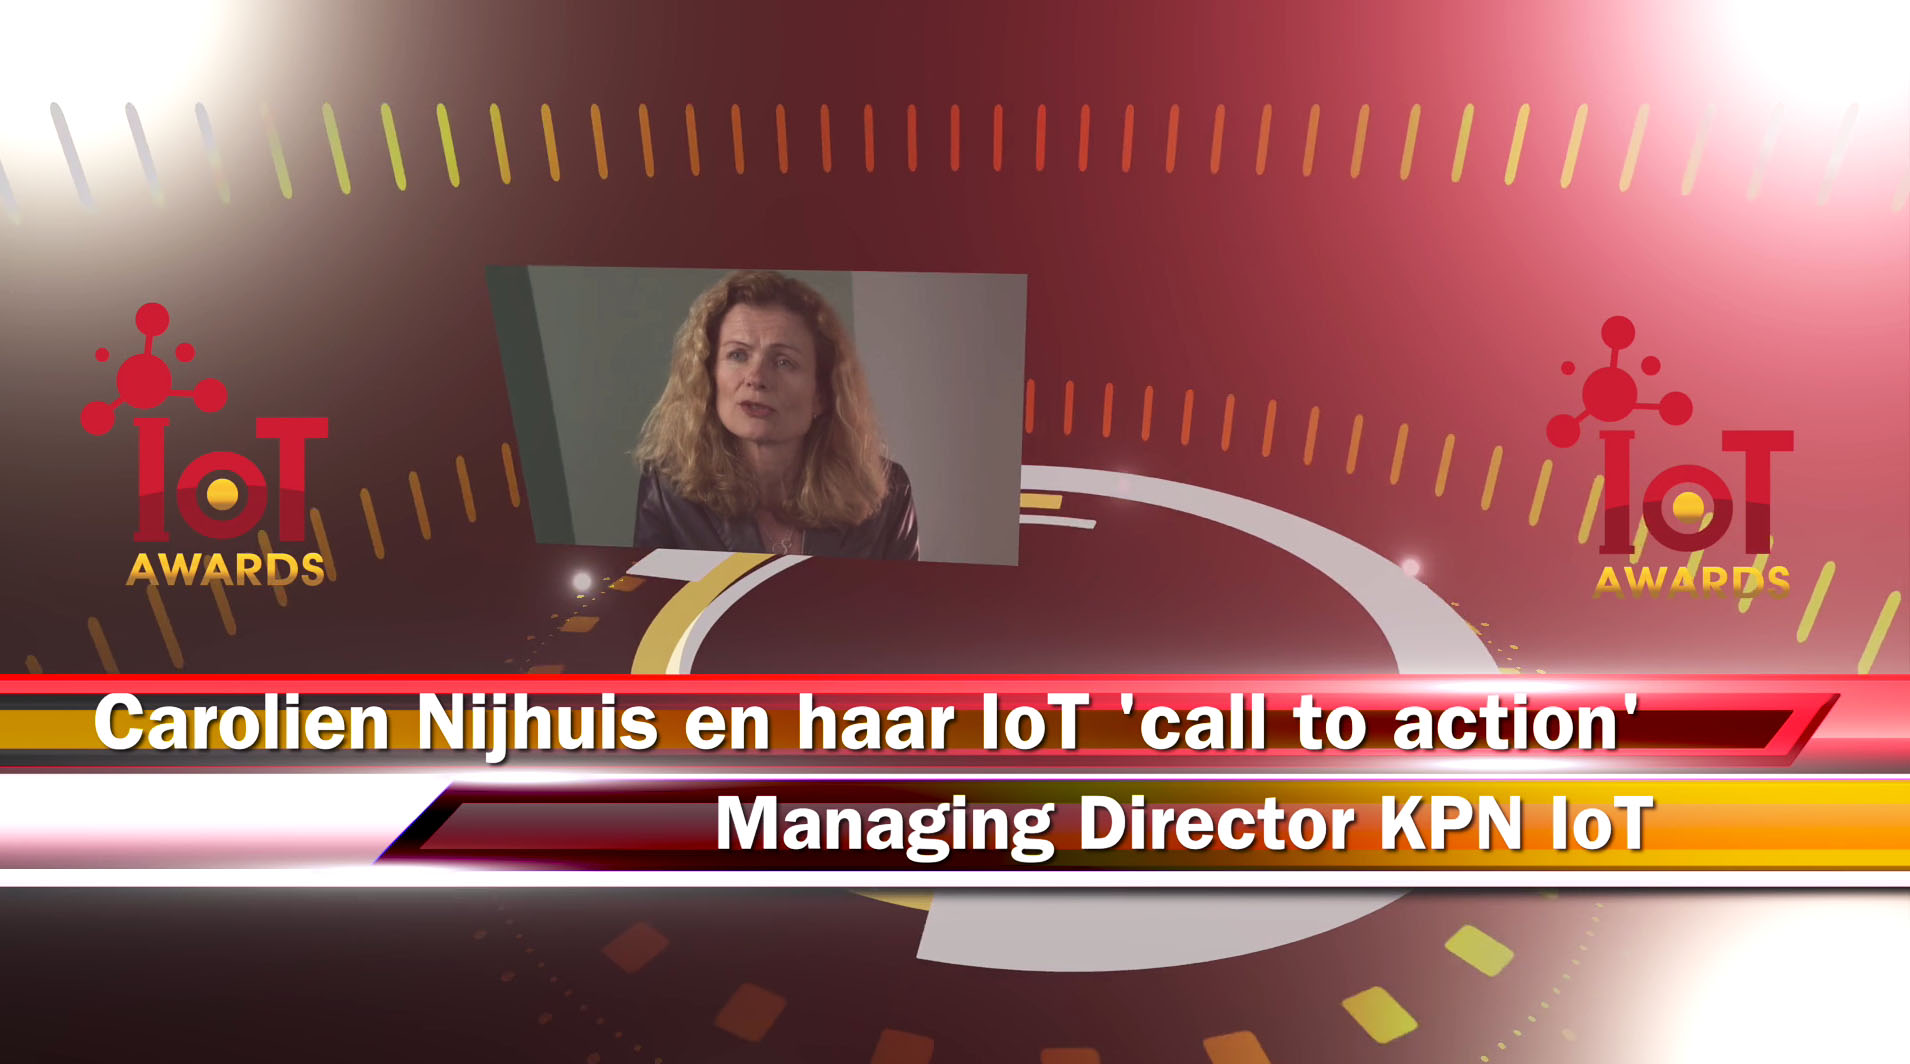 IoT Call to Action KPN Carolien Nijhuis